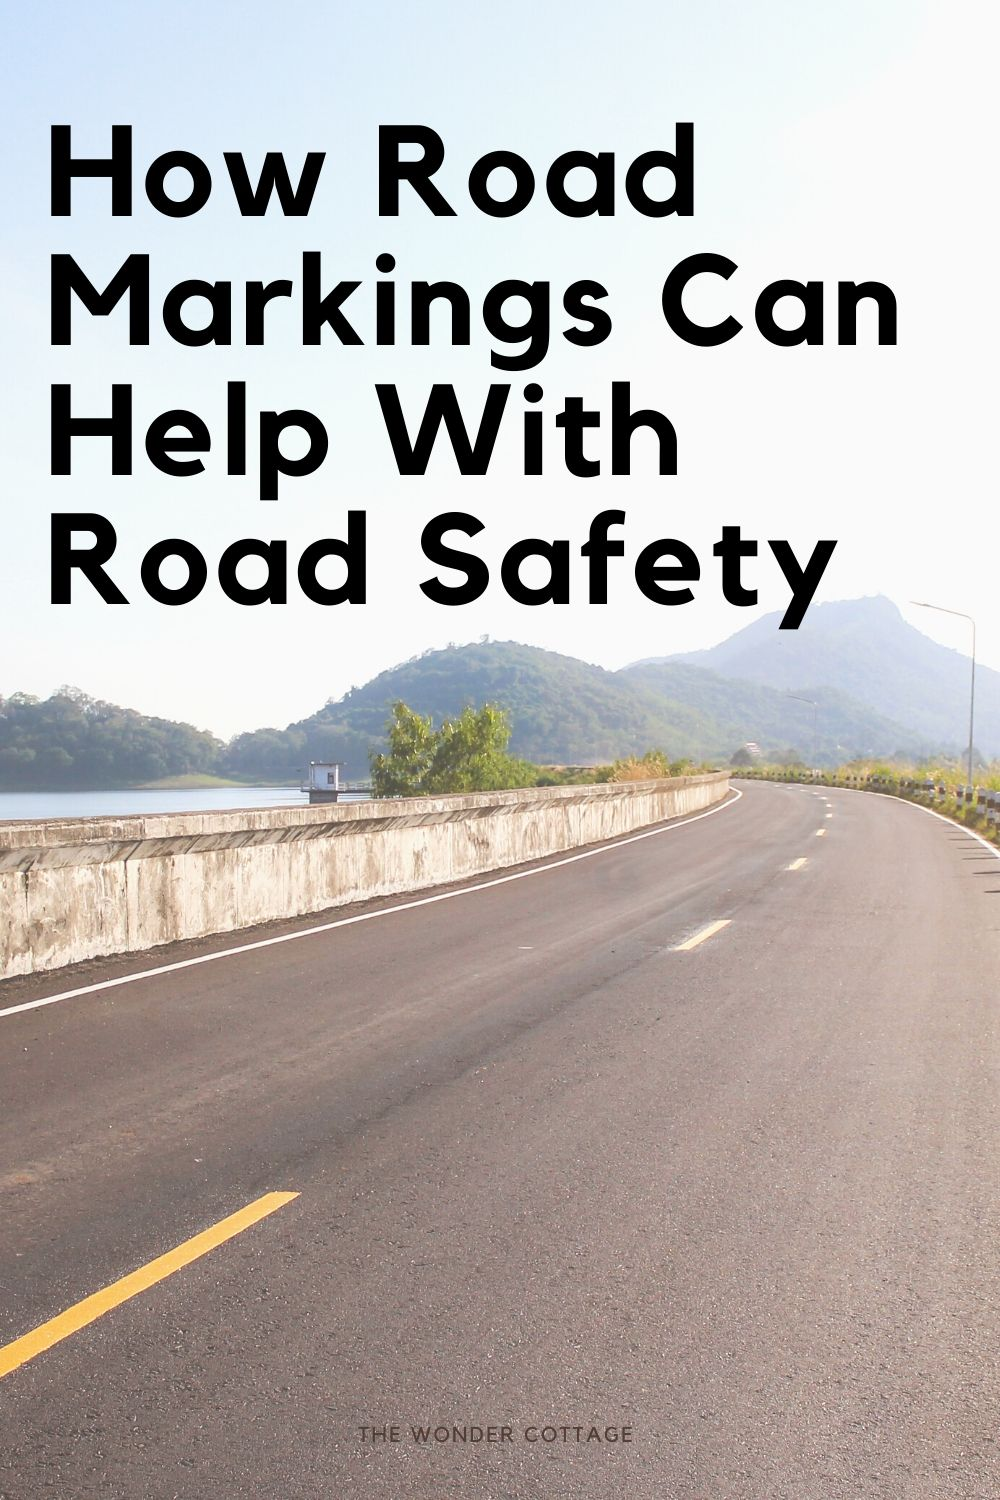 how road markings can help with road safety